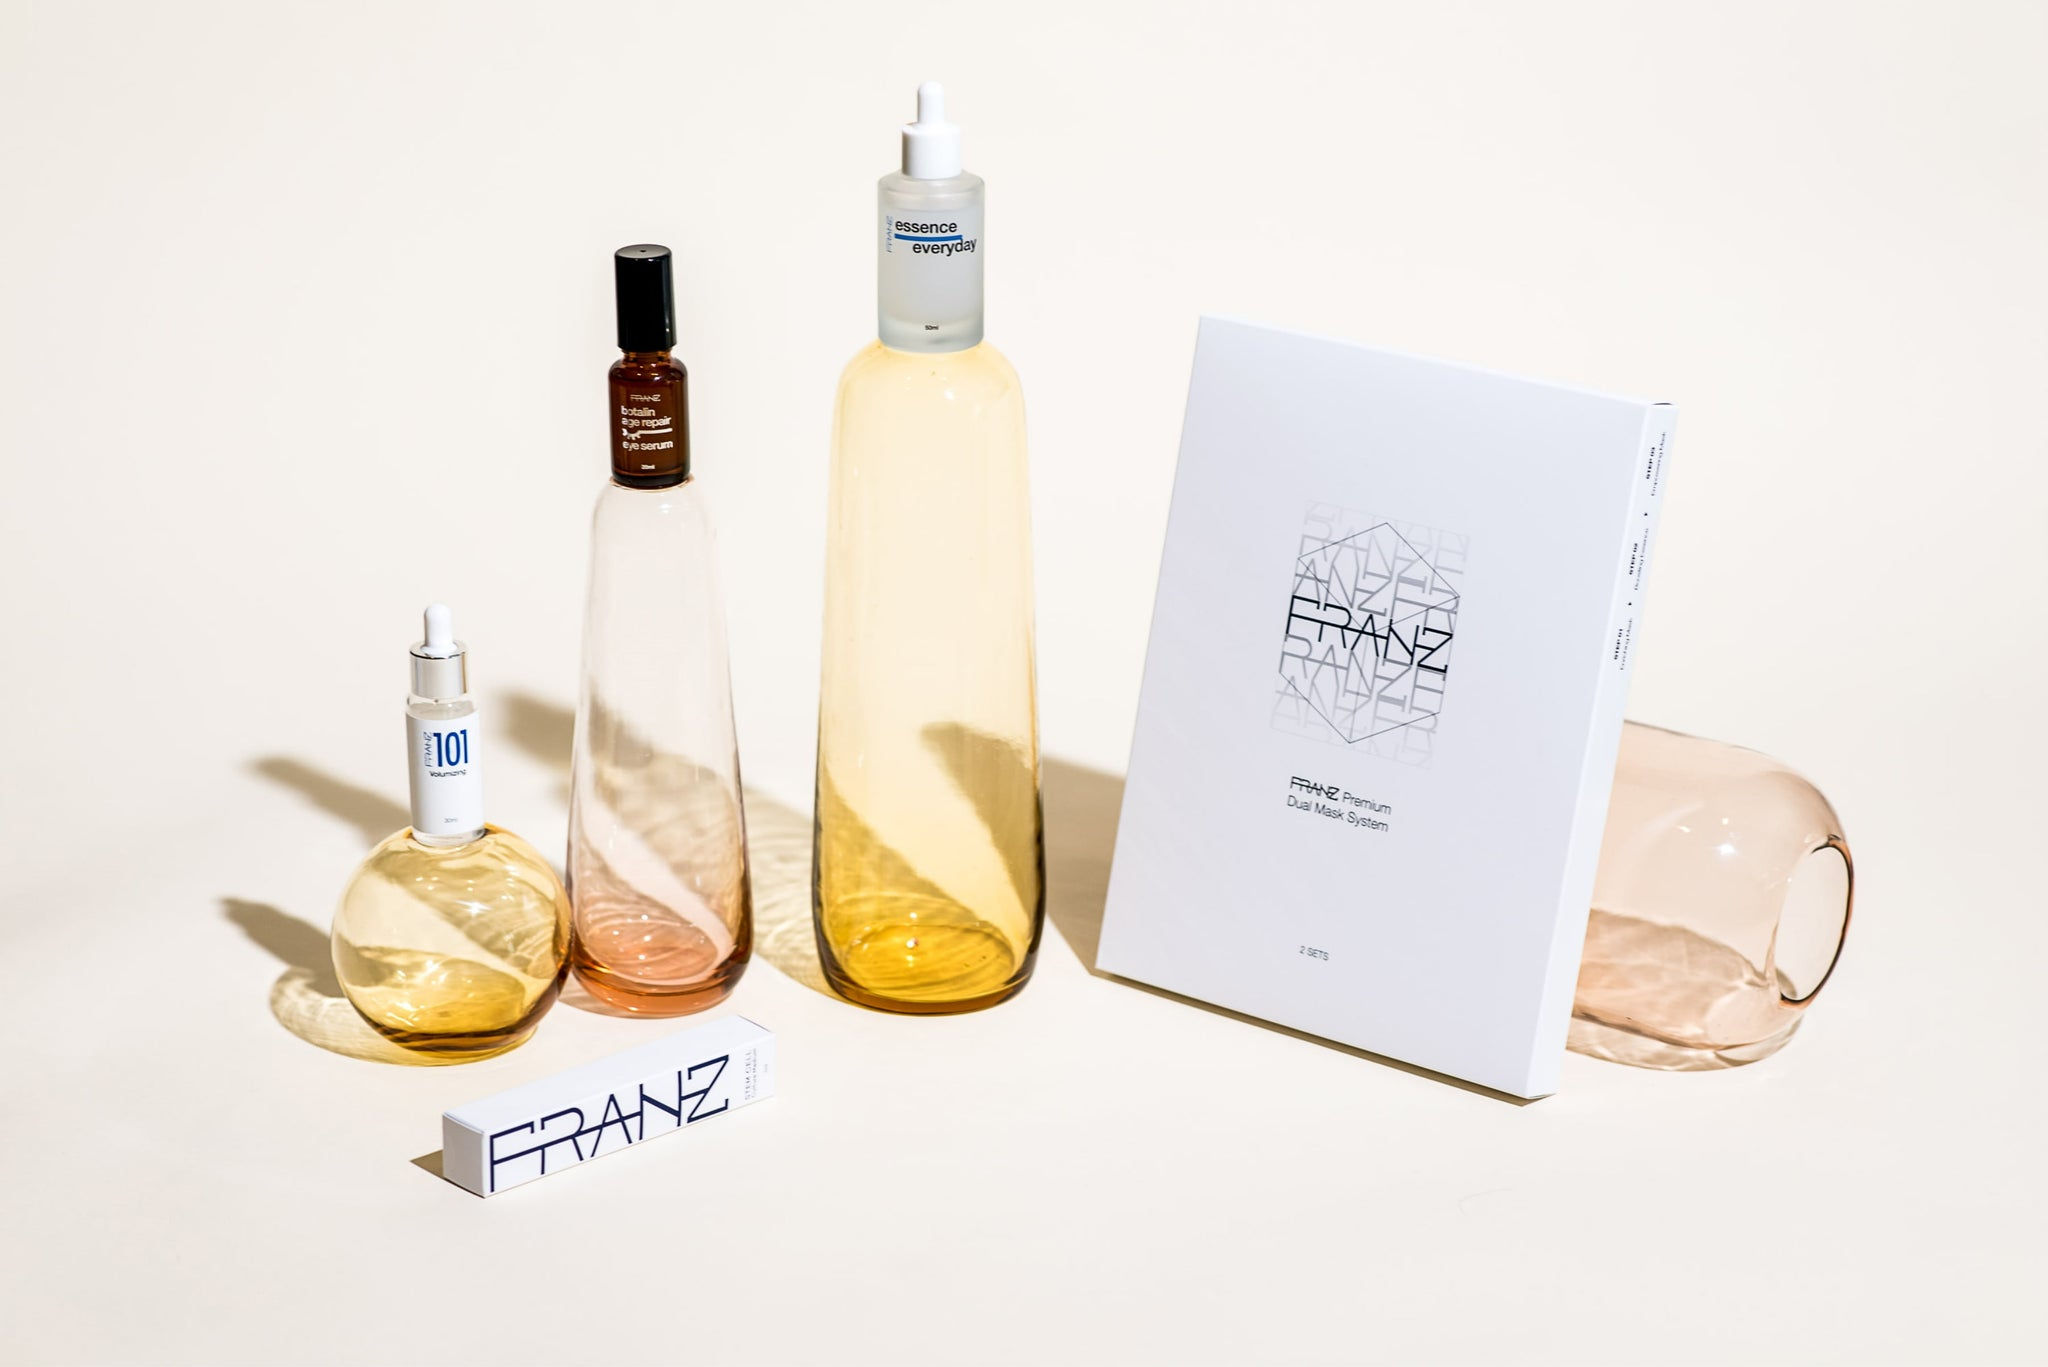 Face, Eye, and Skin Serums from Franz Skincare